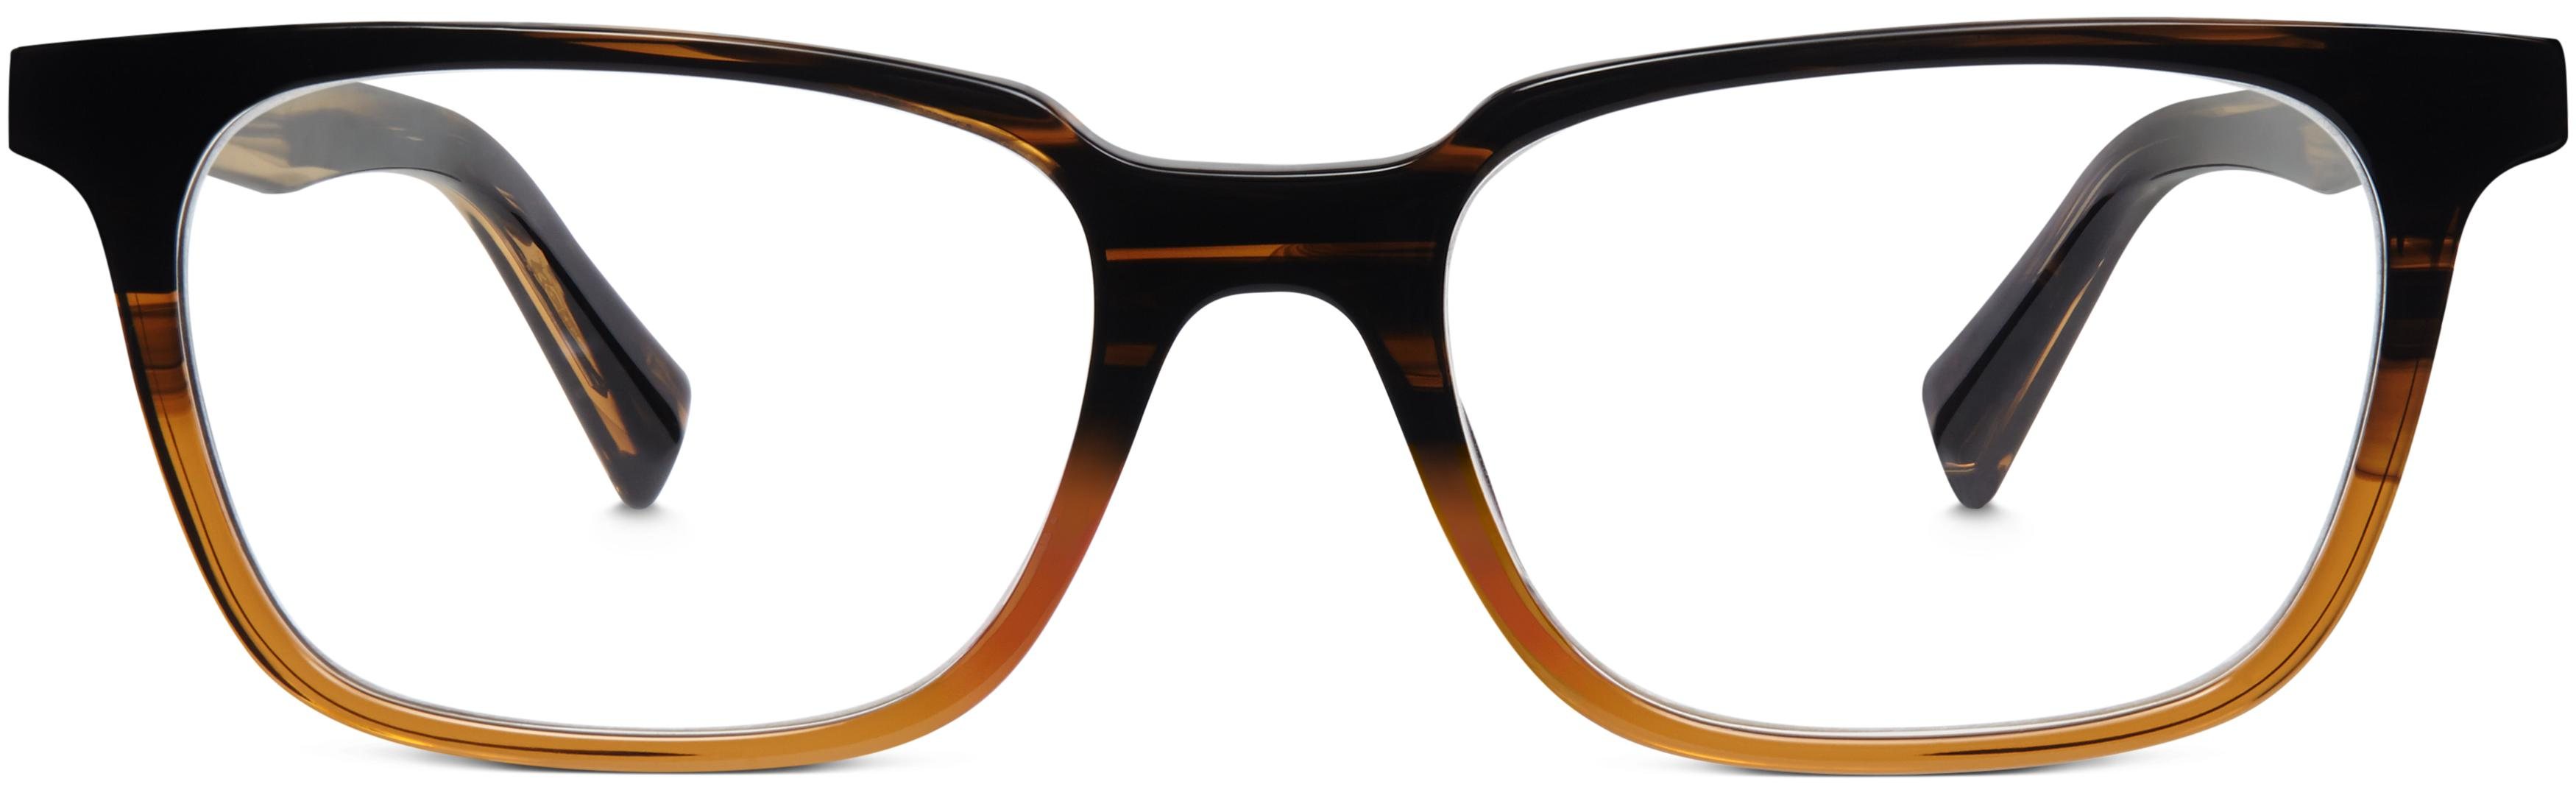 b28f9b627f0f Men s Eyeglasses